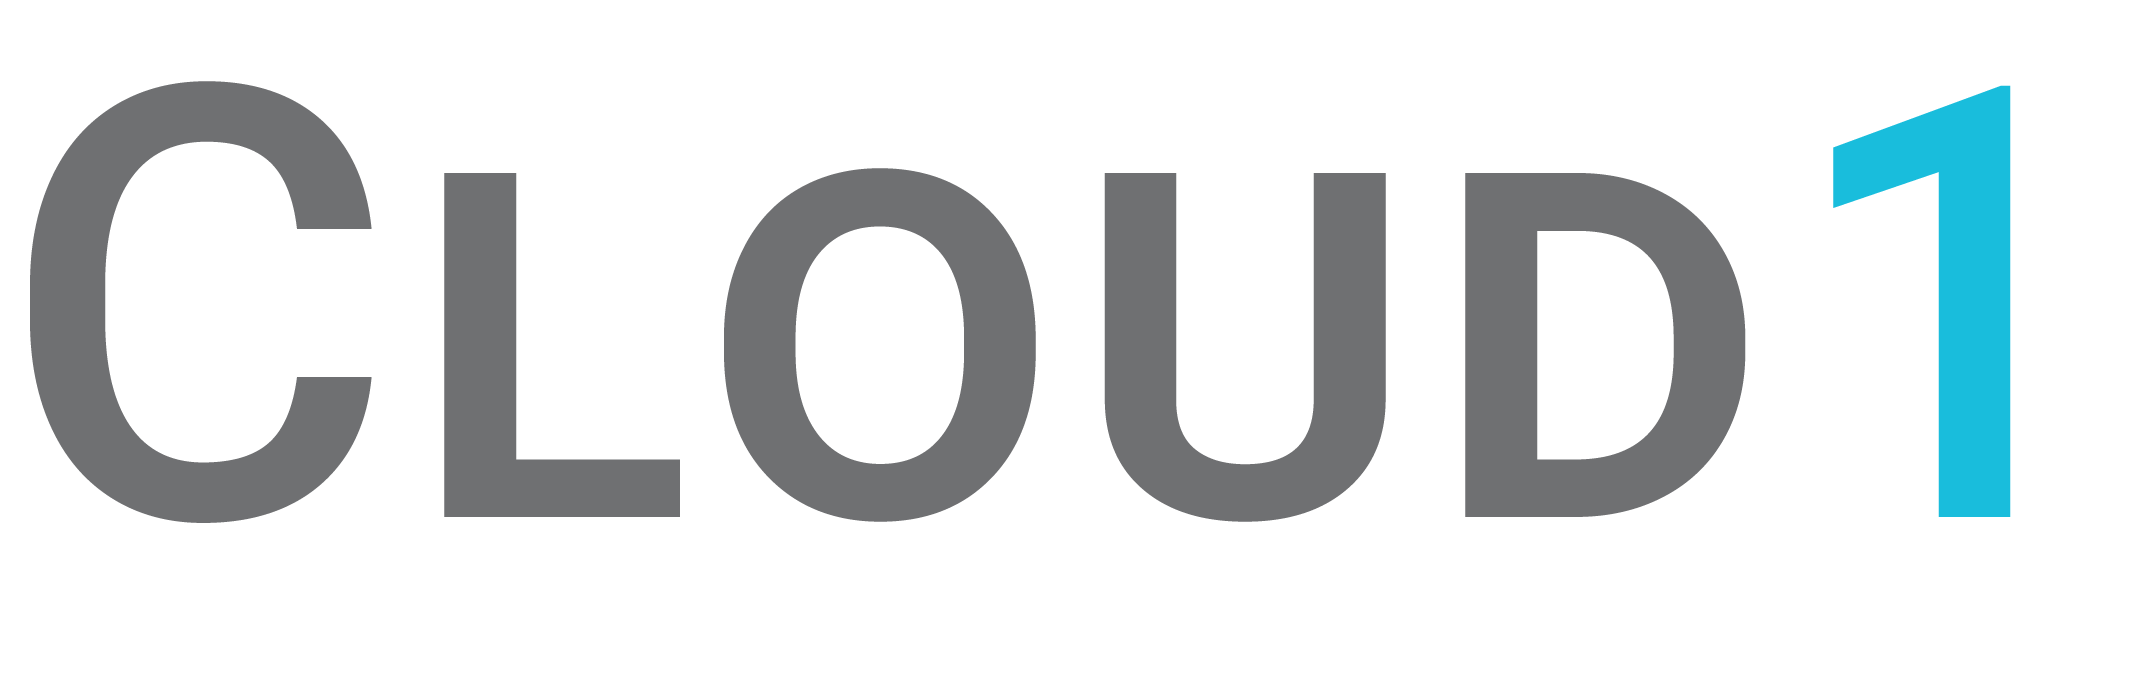 Cloud1 logo